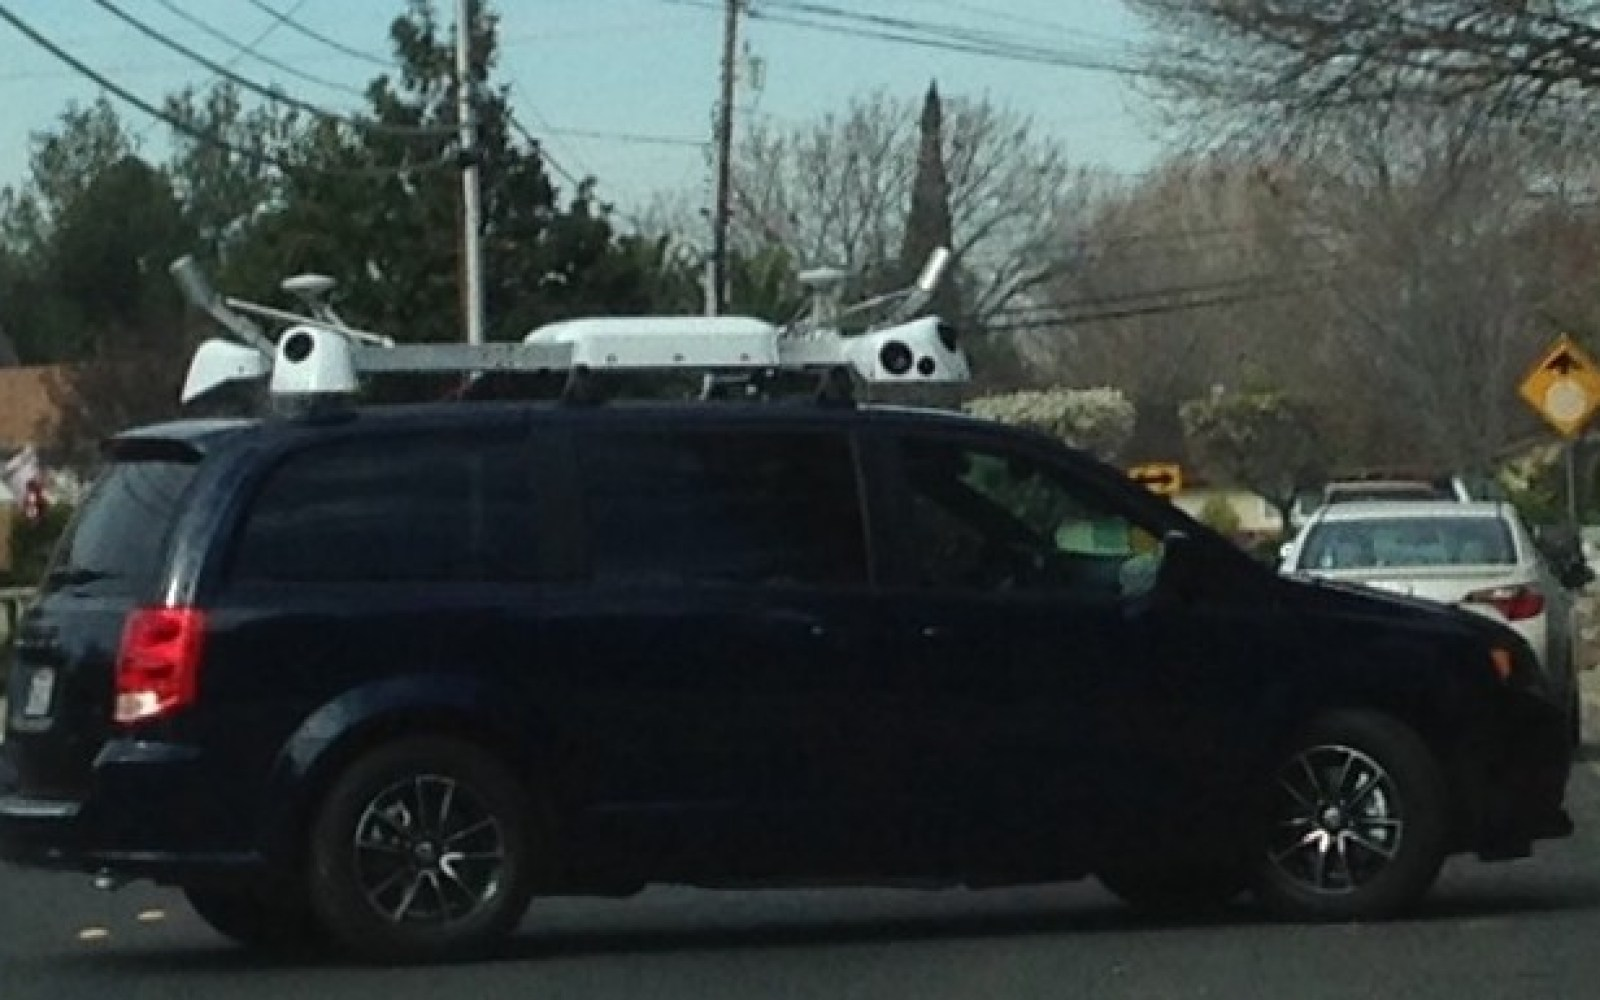 Camera-equipped minivan leased to Apple spotted in Bay Area may point to Street View-style mapping system